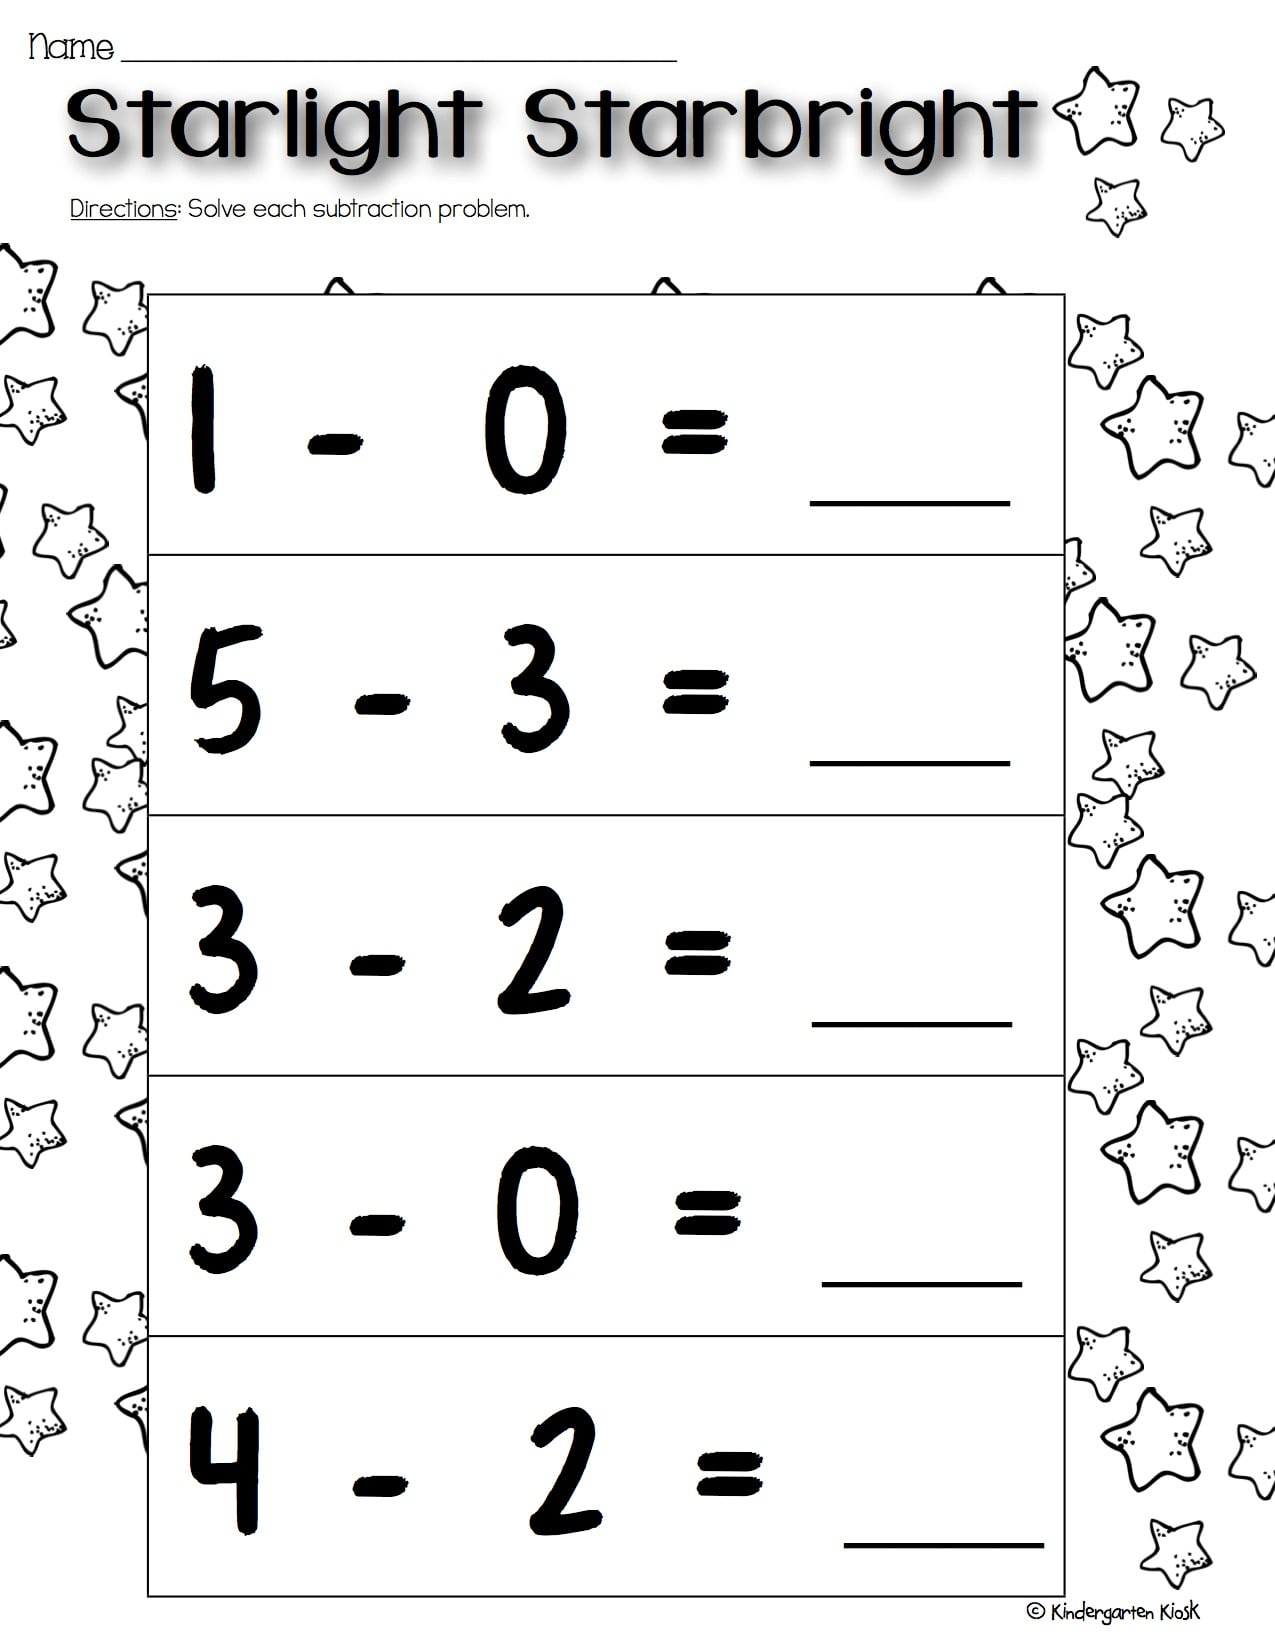 Kindergarten Subtraction Worksheets — Kindergarten Kiosk [ 1650 x 1275 Pixel ]